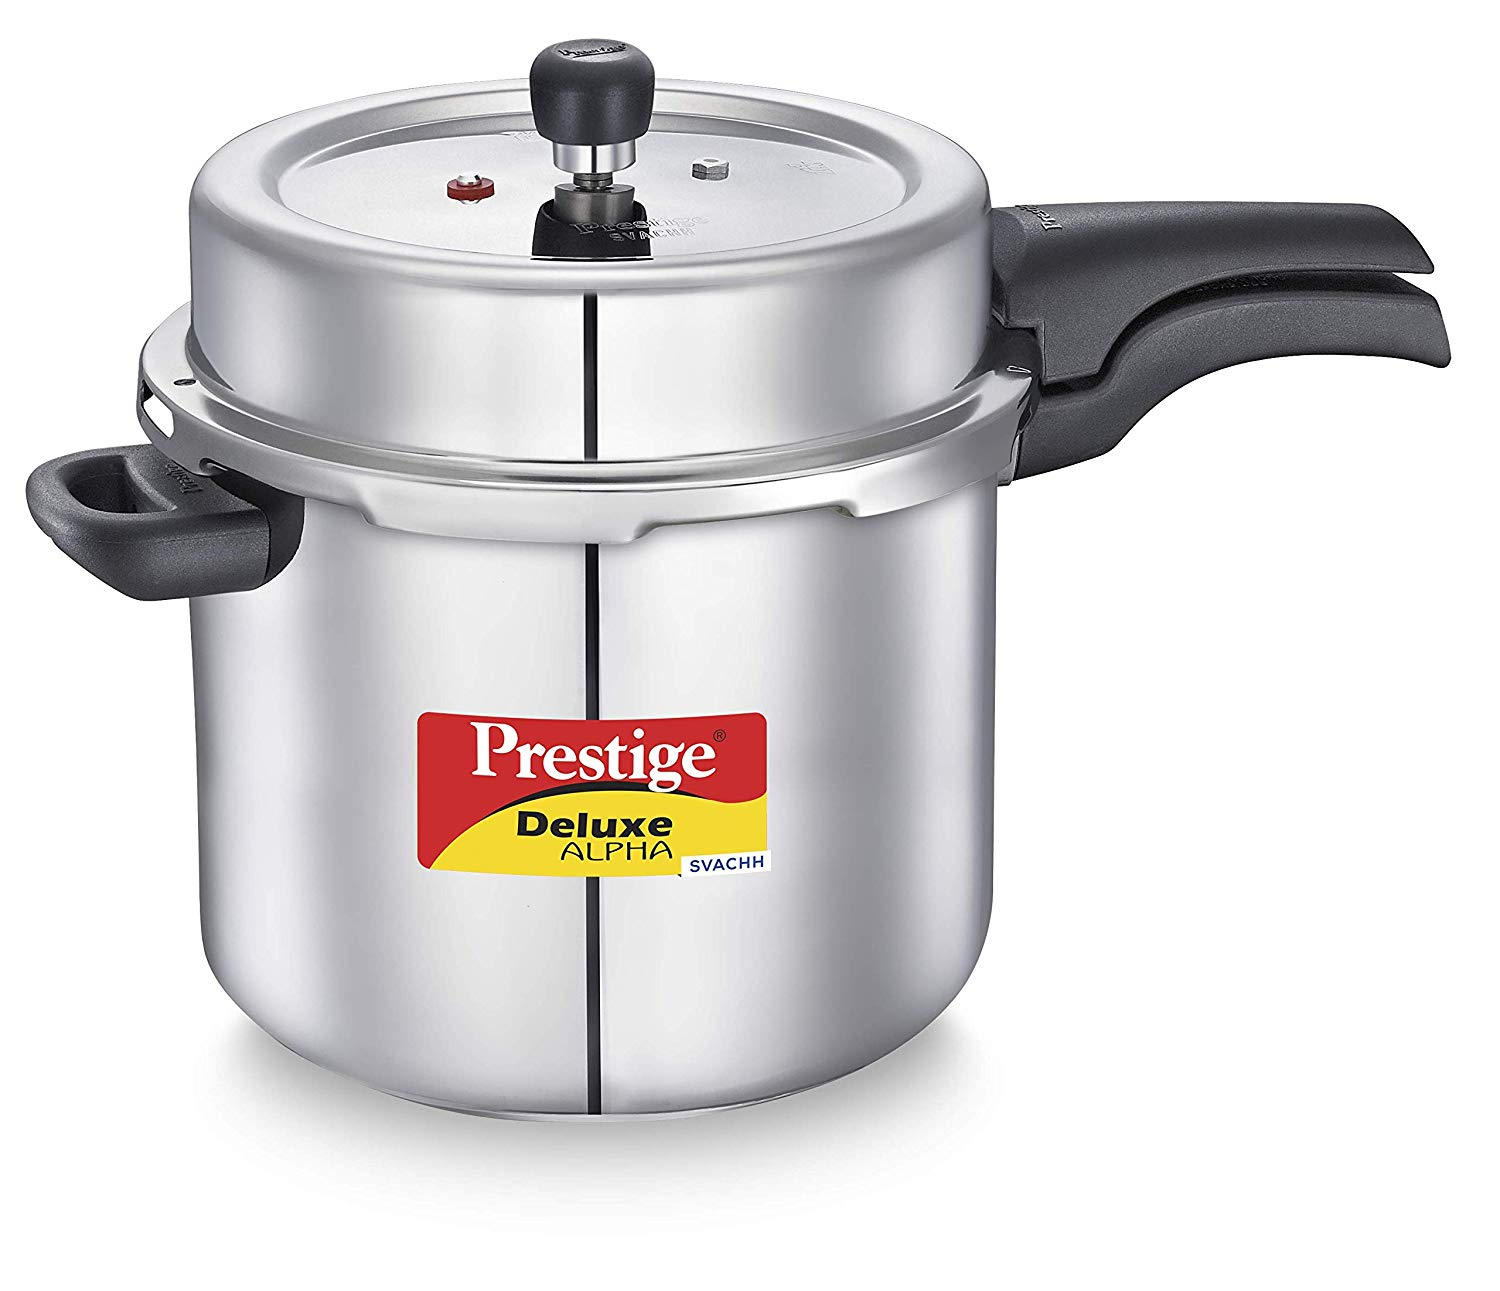 SS Deluxe Alpha Svachh Stainless steel Pressure Cooker 10 L